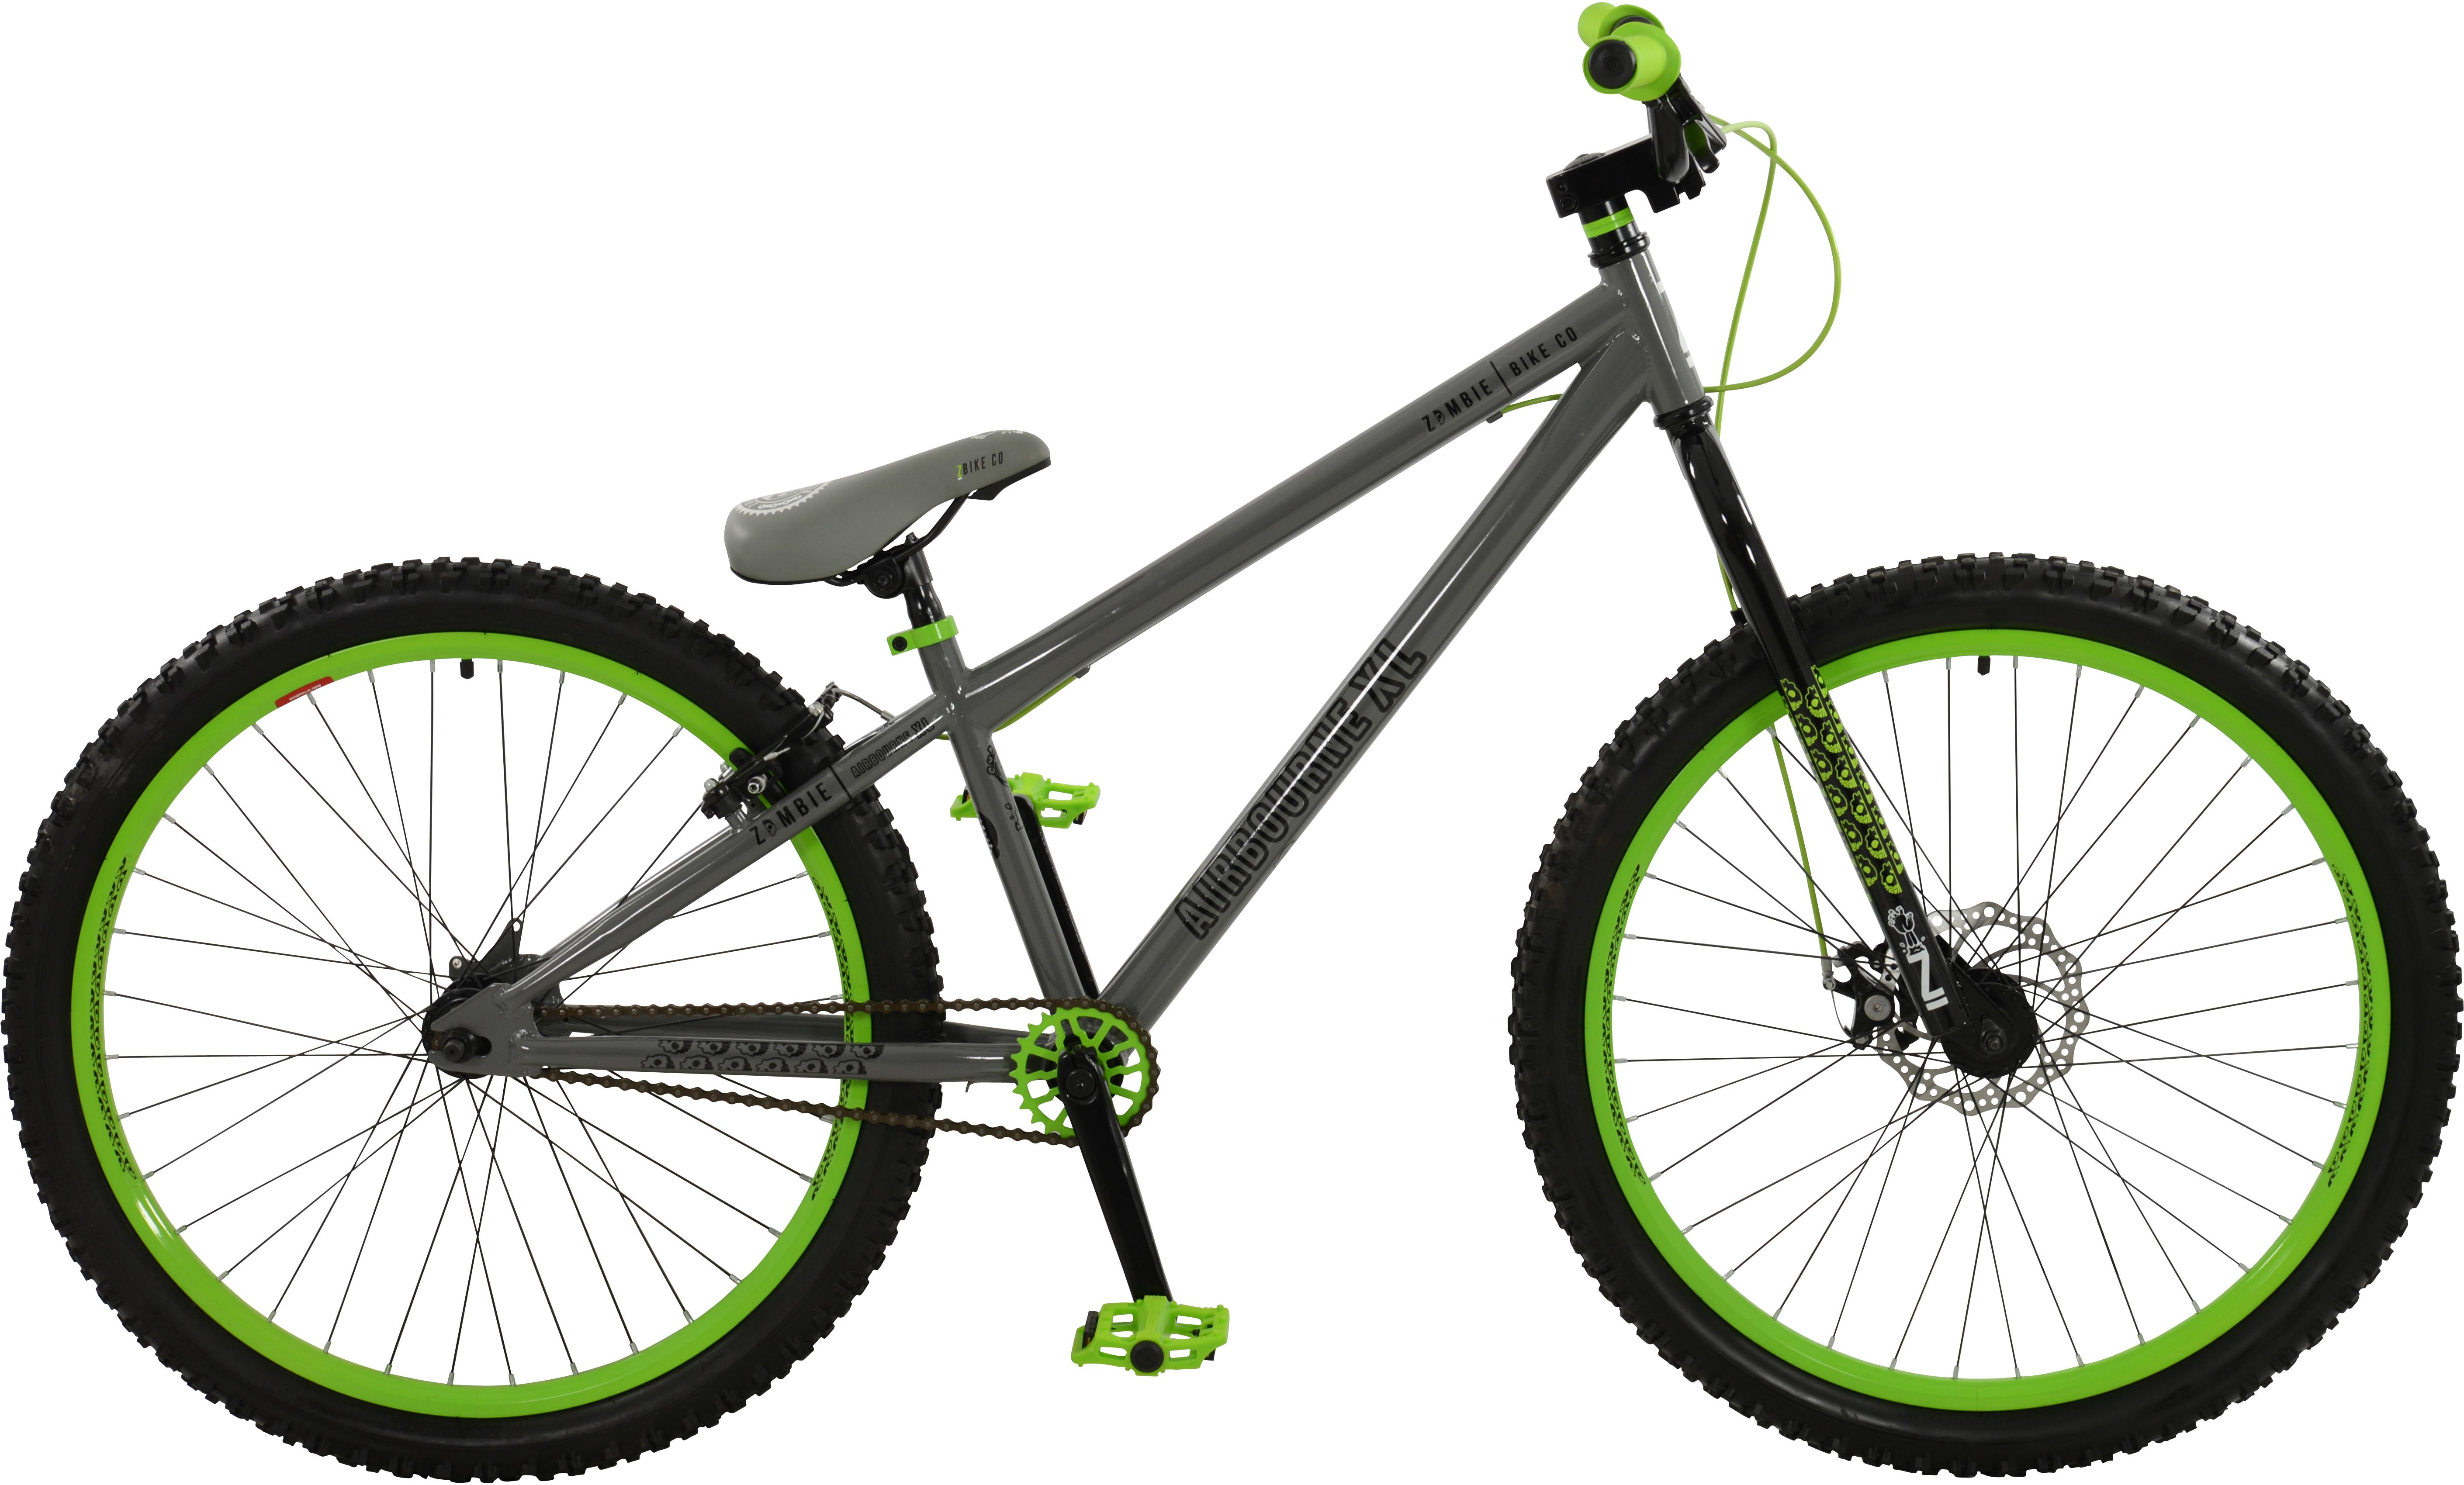 Zombie Airbourne XL BMX Dirt Jump Bike - 26 inch Wheel